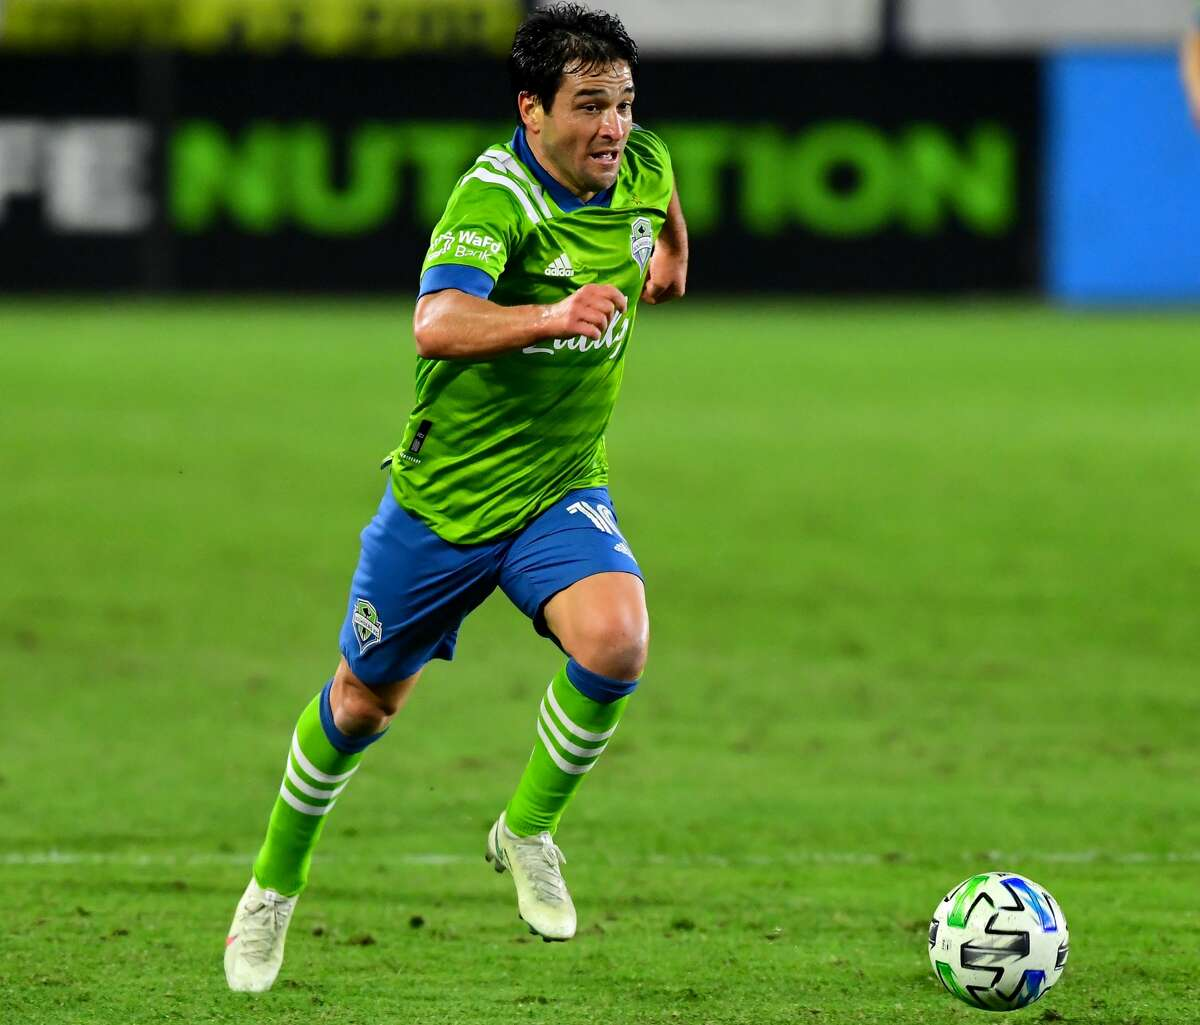 CARSON, CA - NOVEMBER 04: Nicolas Lodeiro #10 of the Seattle Sounders takes the ball down field during the game against the Los Angeles Galaxy at Dignity Health Sports Park on November 4, 2020 in Carson, California. (Photo by Jayne Kamin-Oncea/Getty Images)